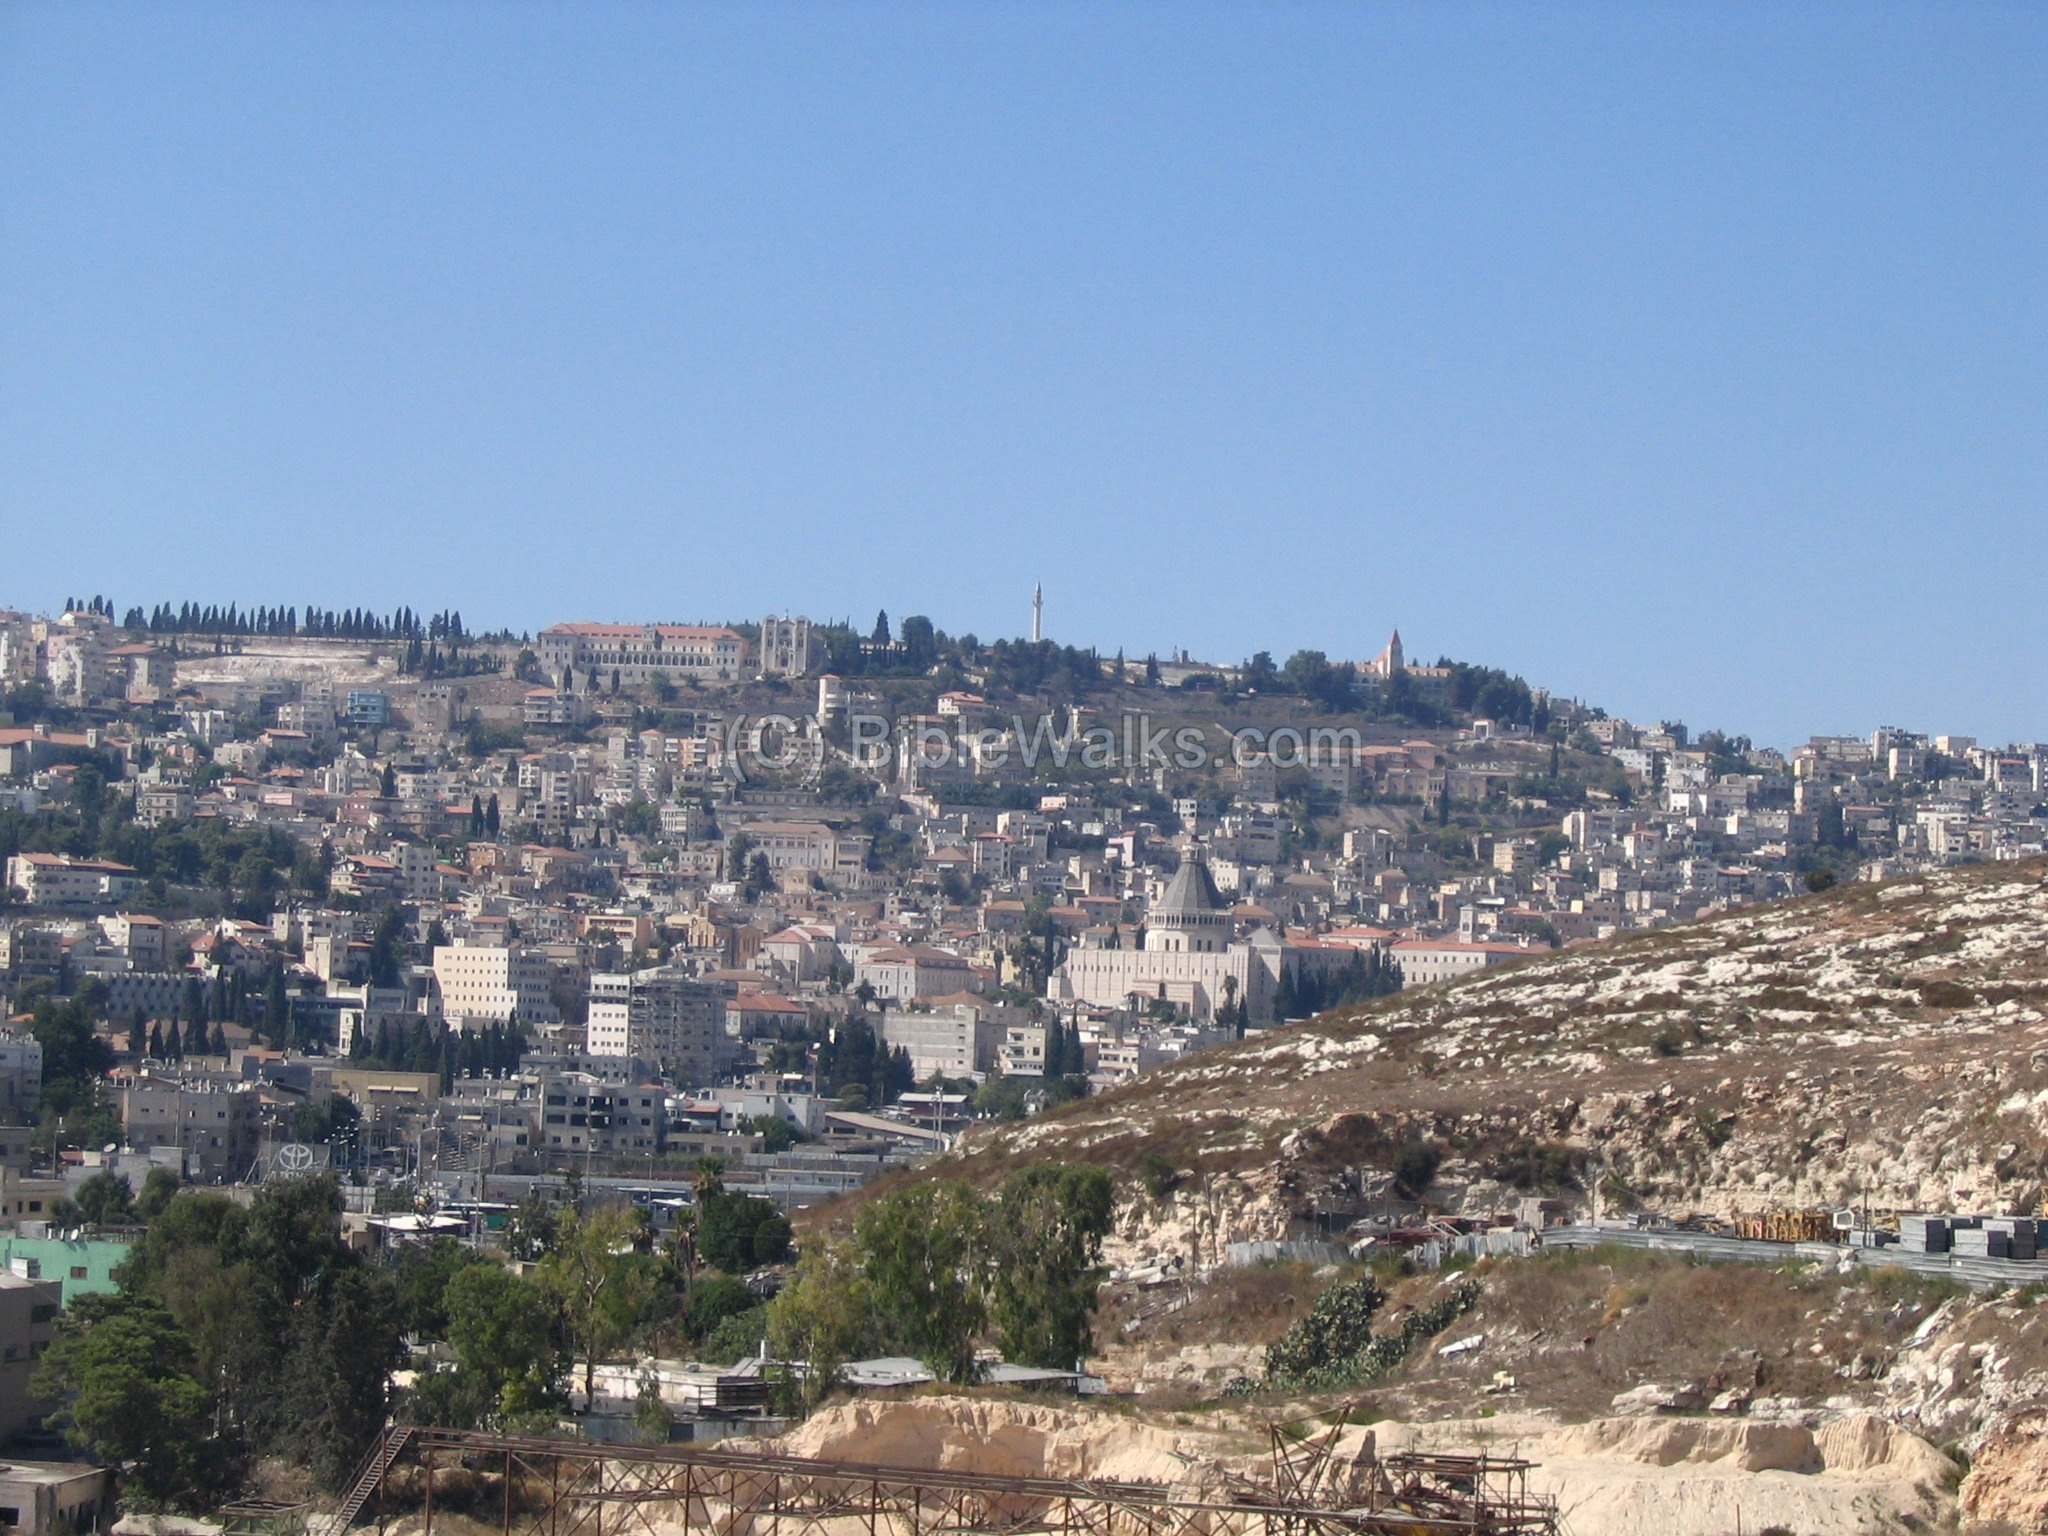 ' ' from the web at 'http://www.biblewalks.com/Sites/../Photos/nazareth1.jpg'